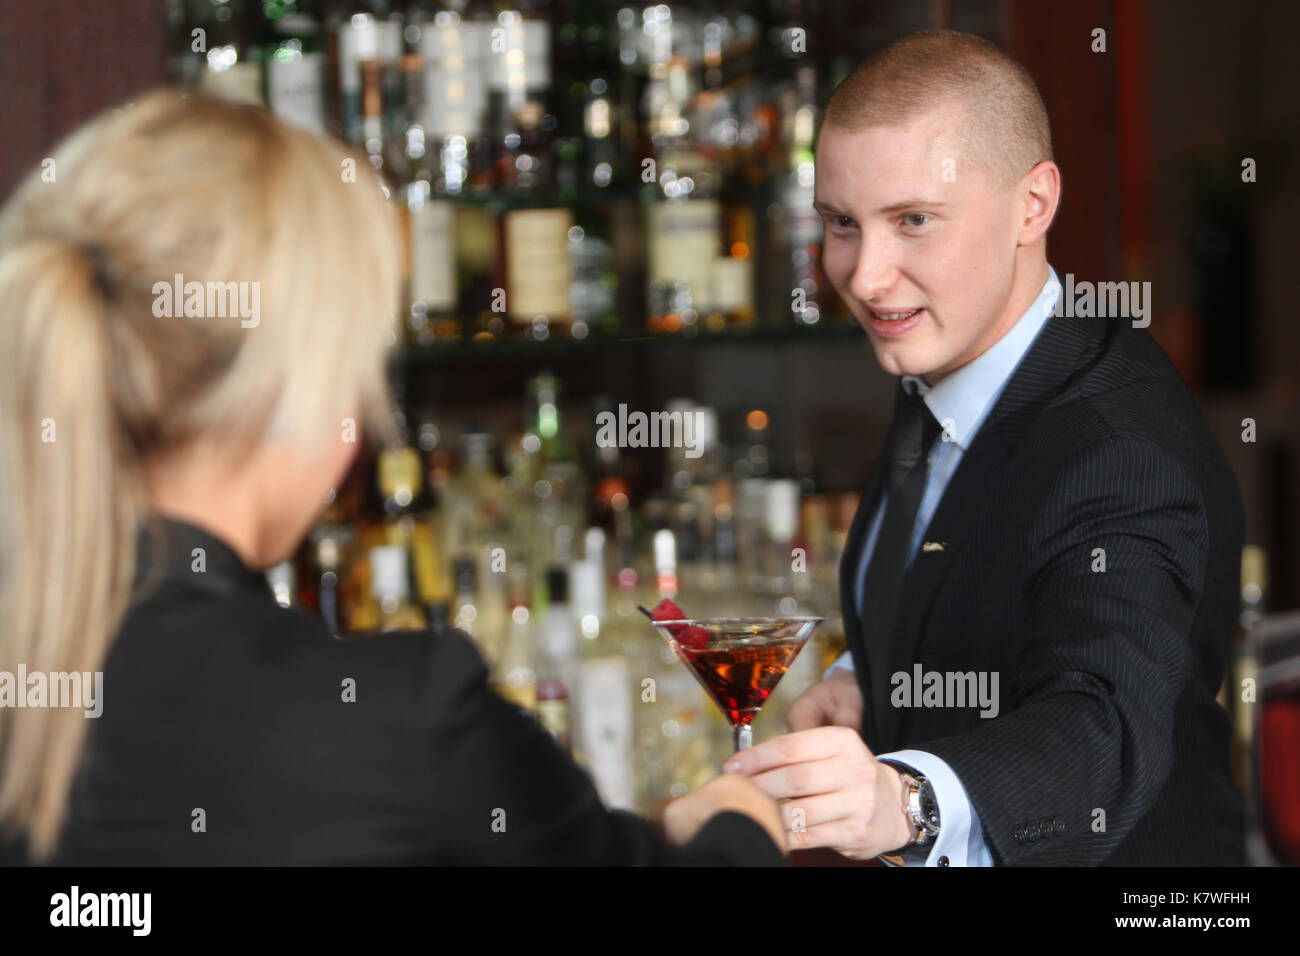 Barman serving cocktail to customer in Hotel bar - Stock Image